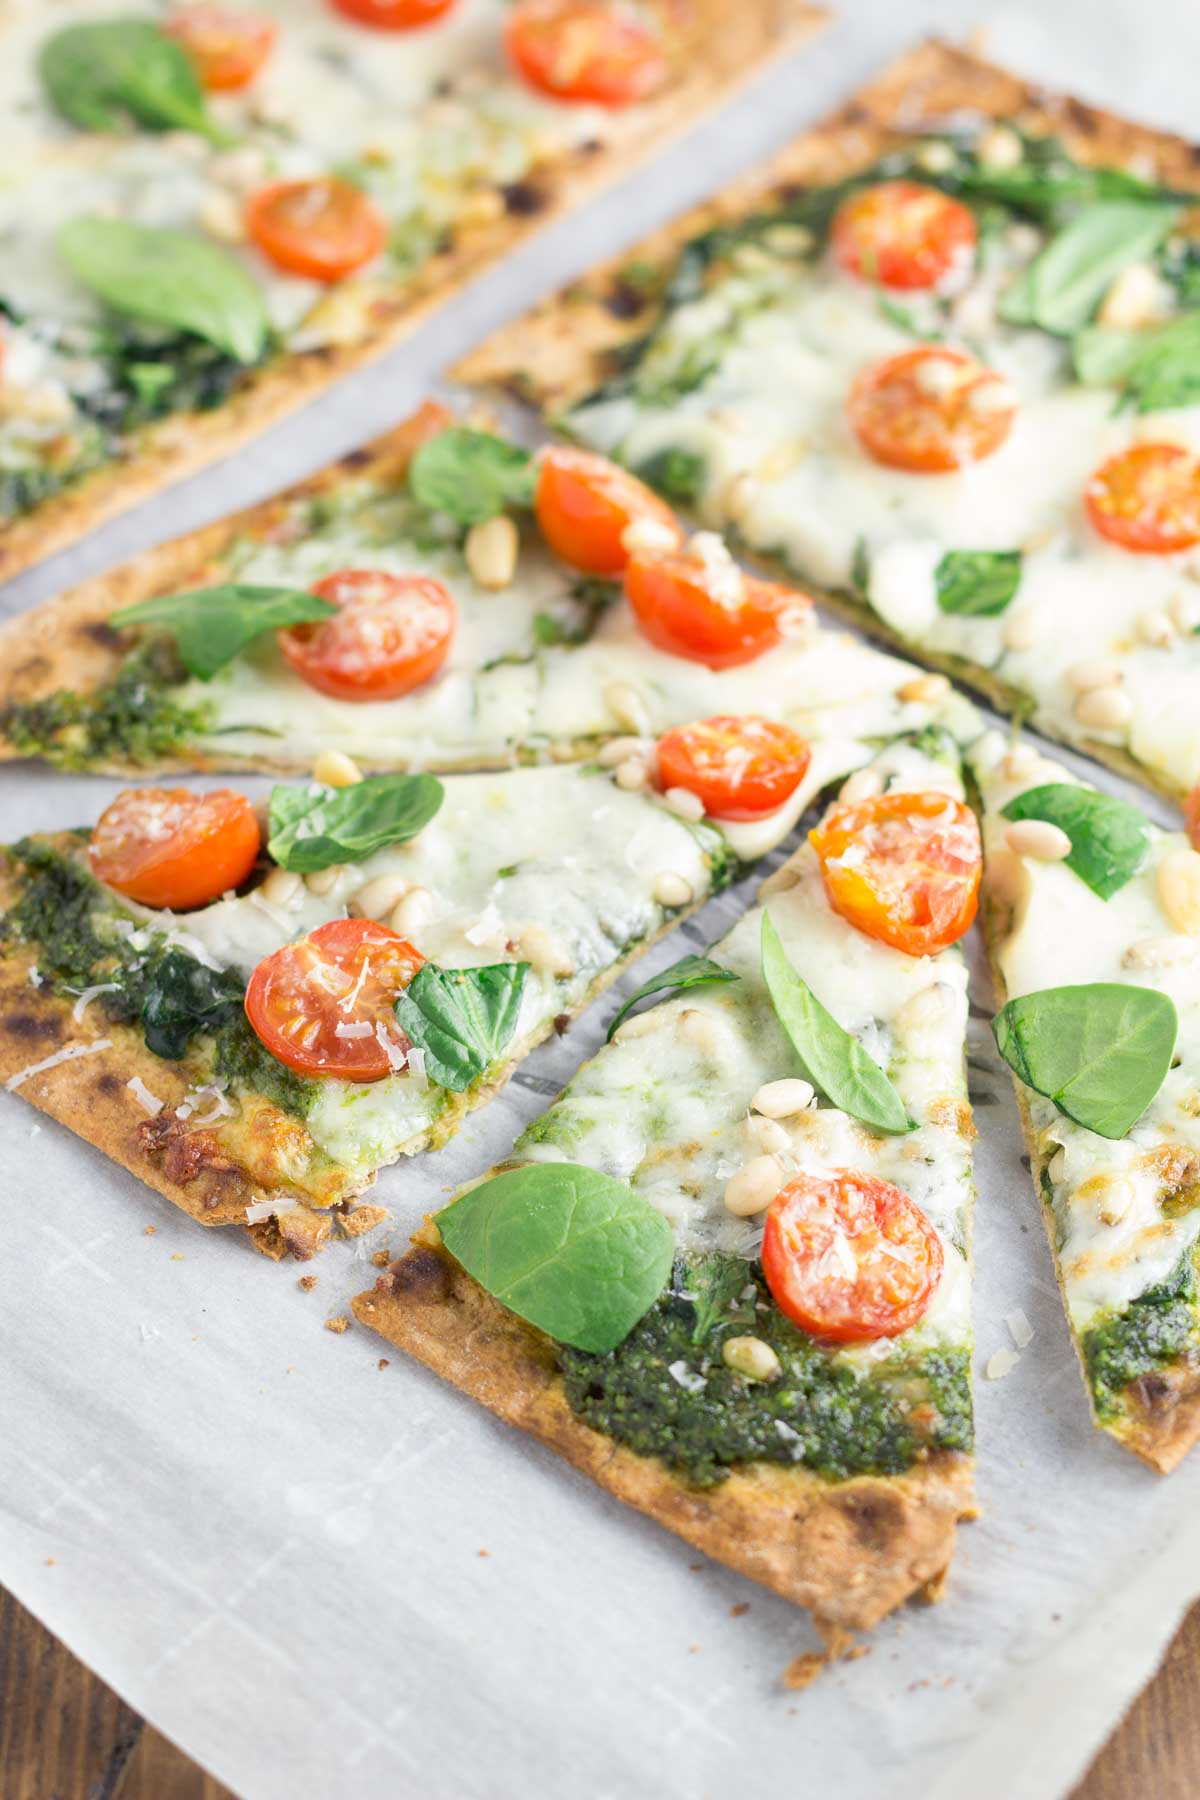 Spinach Pesto Pizza with Tomato on parchment paper